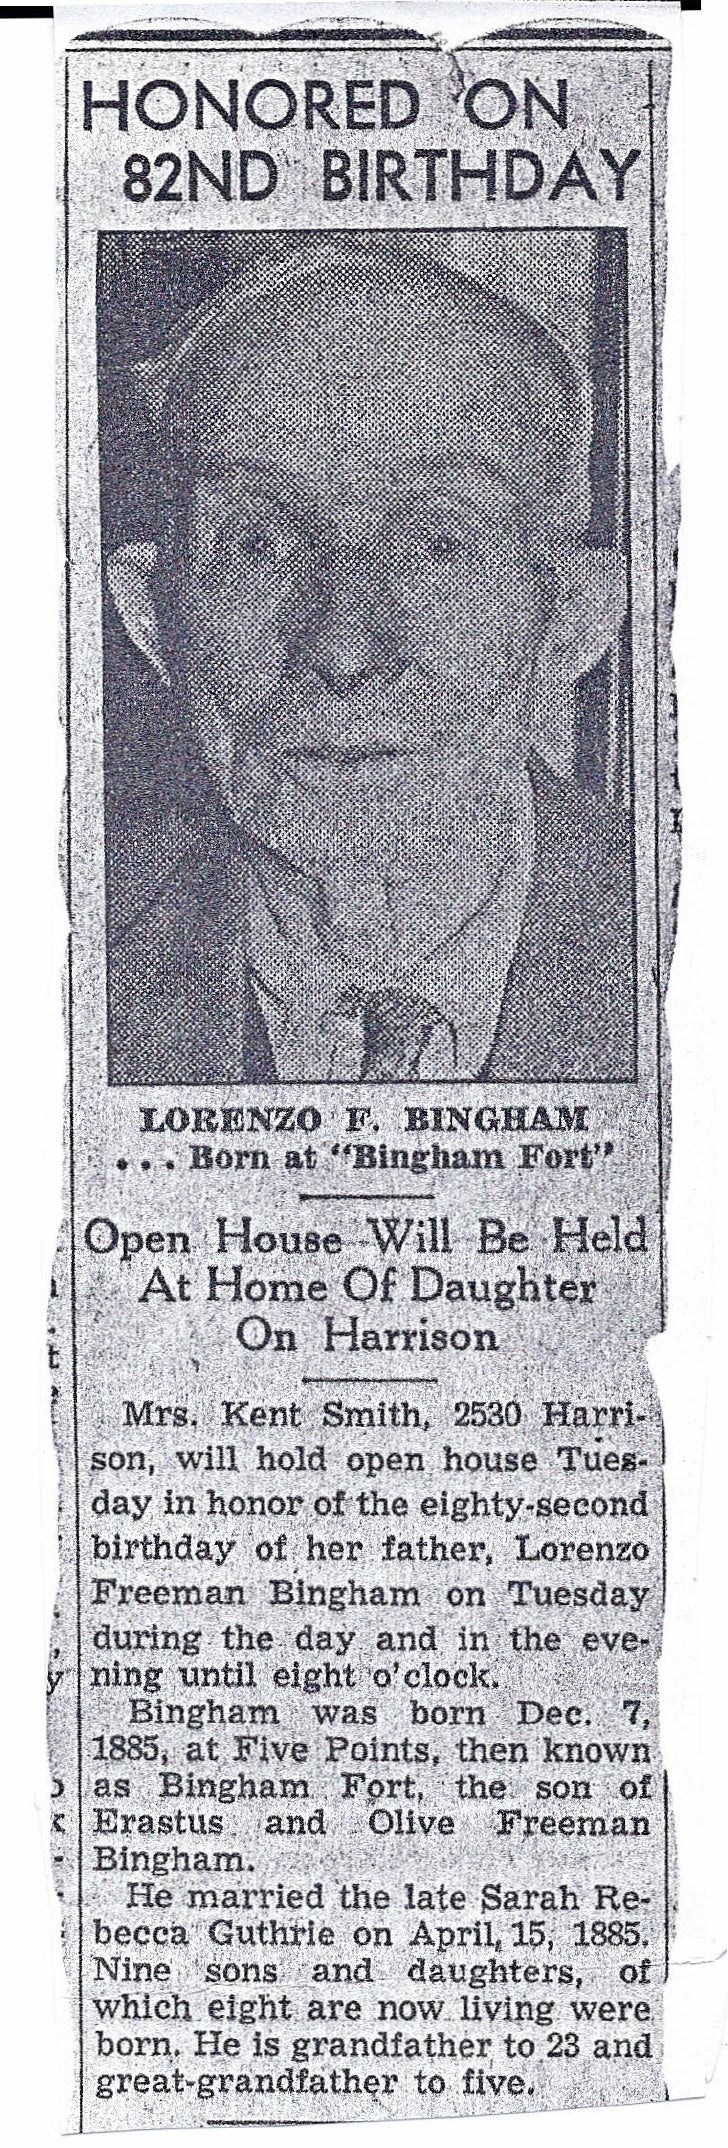 Lorenzo Freeman Bingham Birthday Announcement